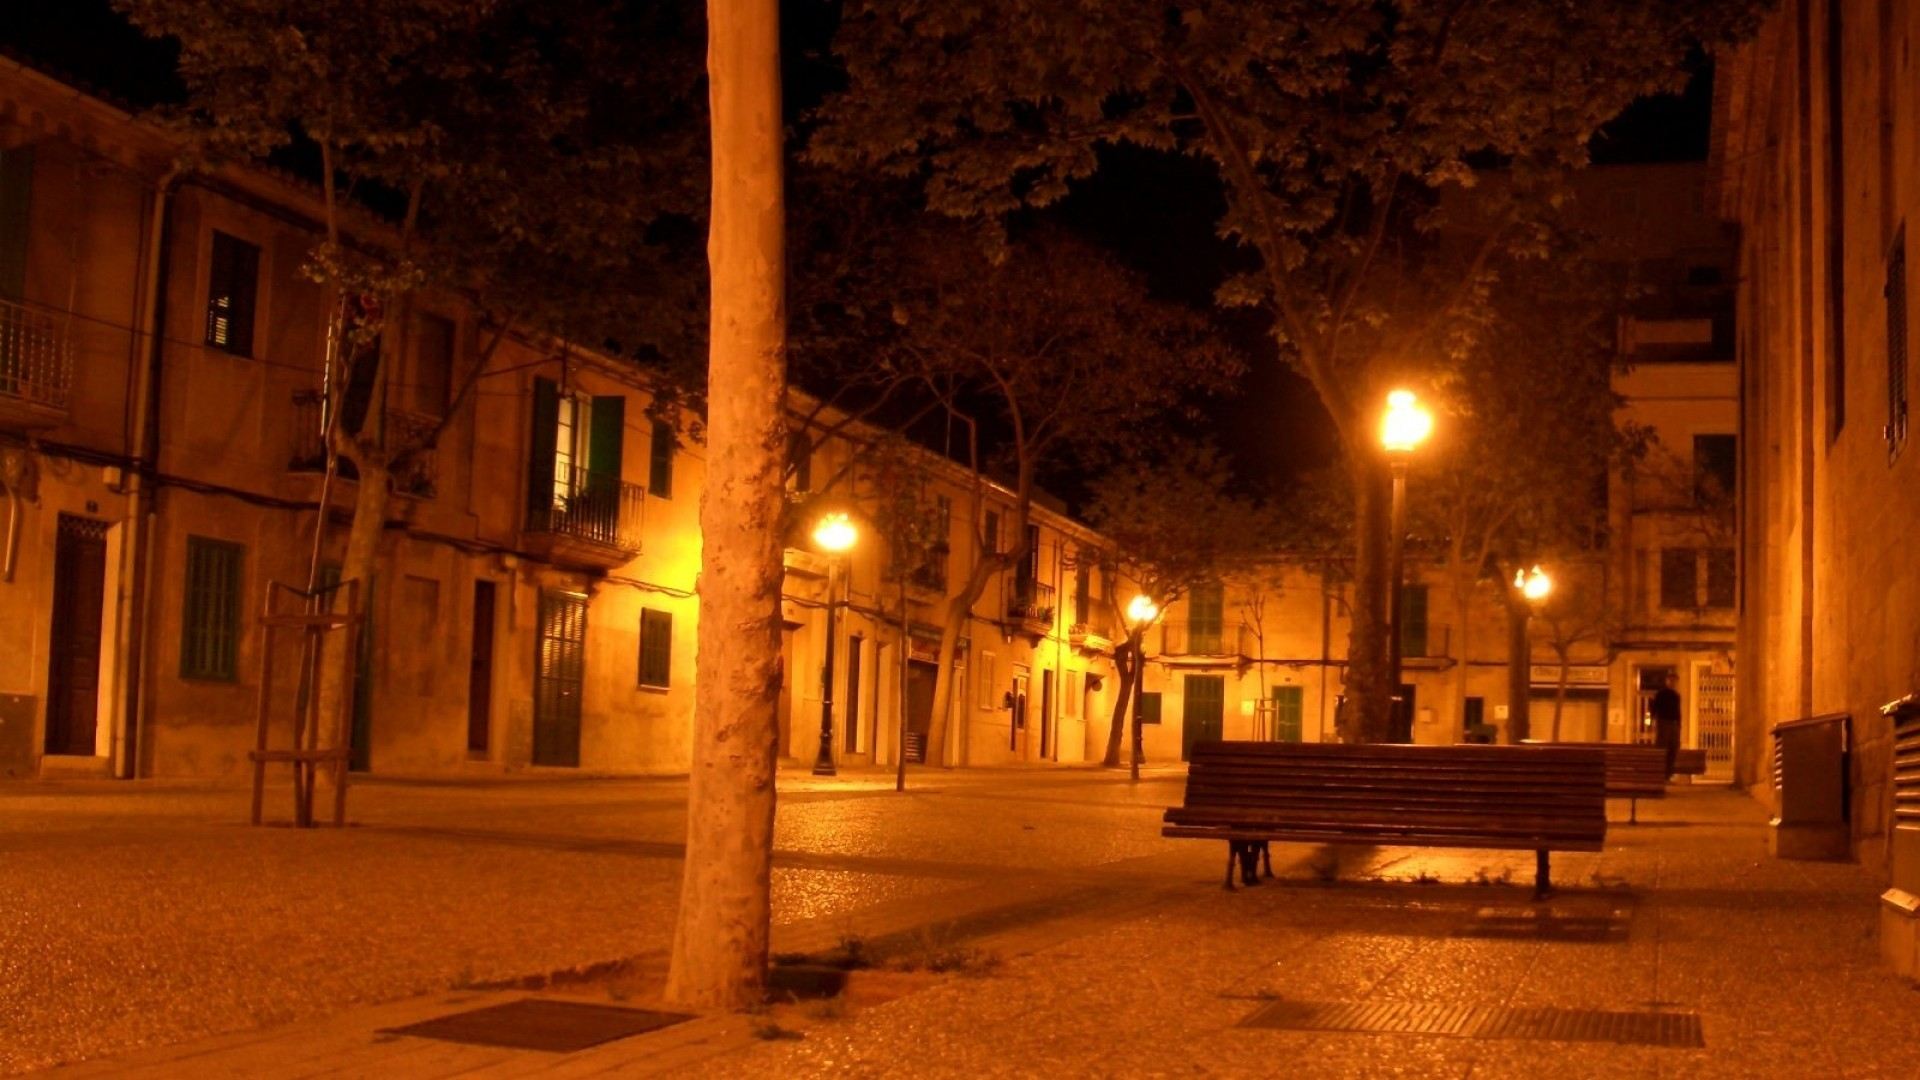 Wallpaper street, city, night light, lamps, bench